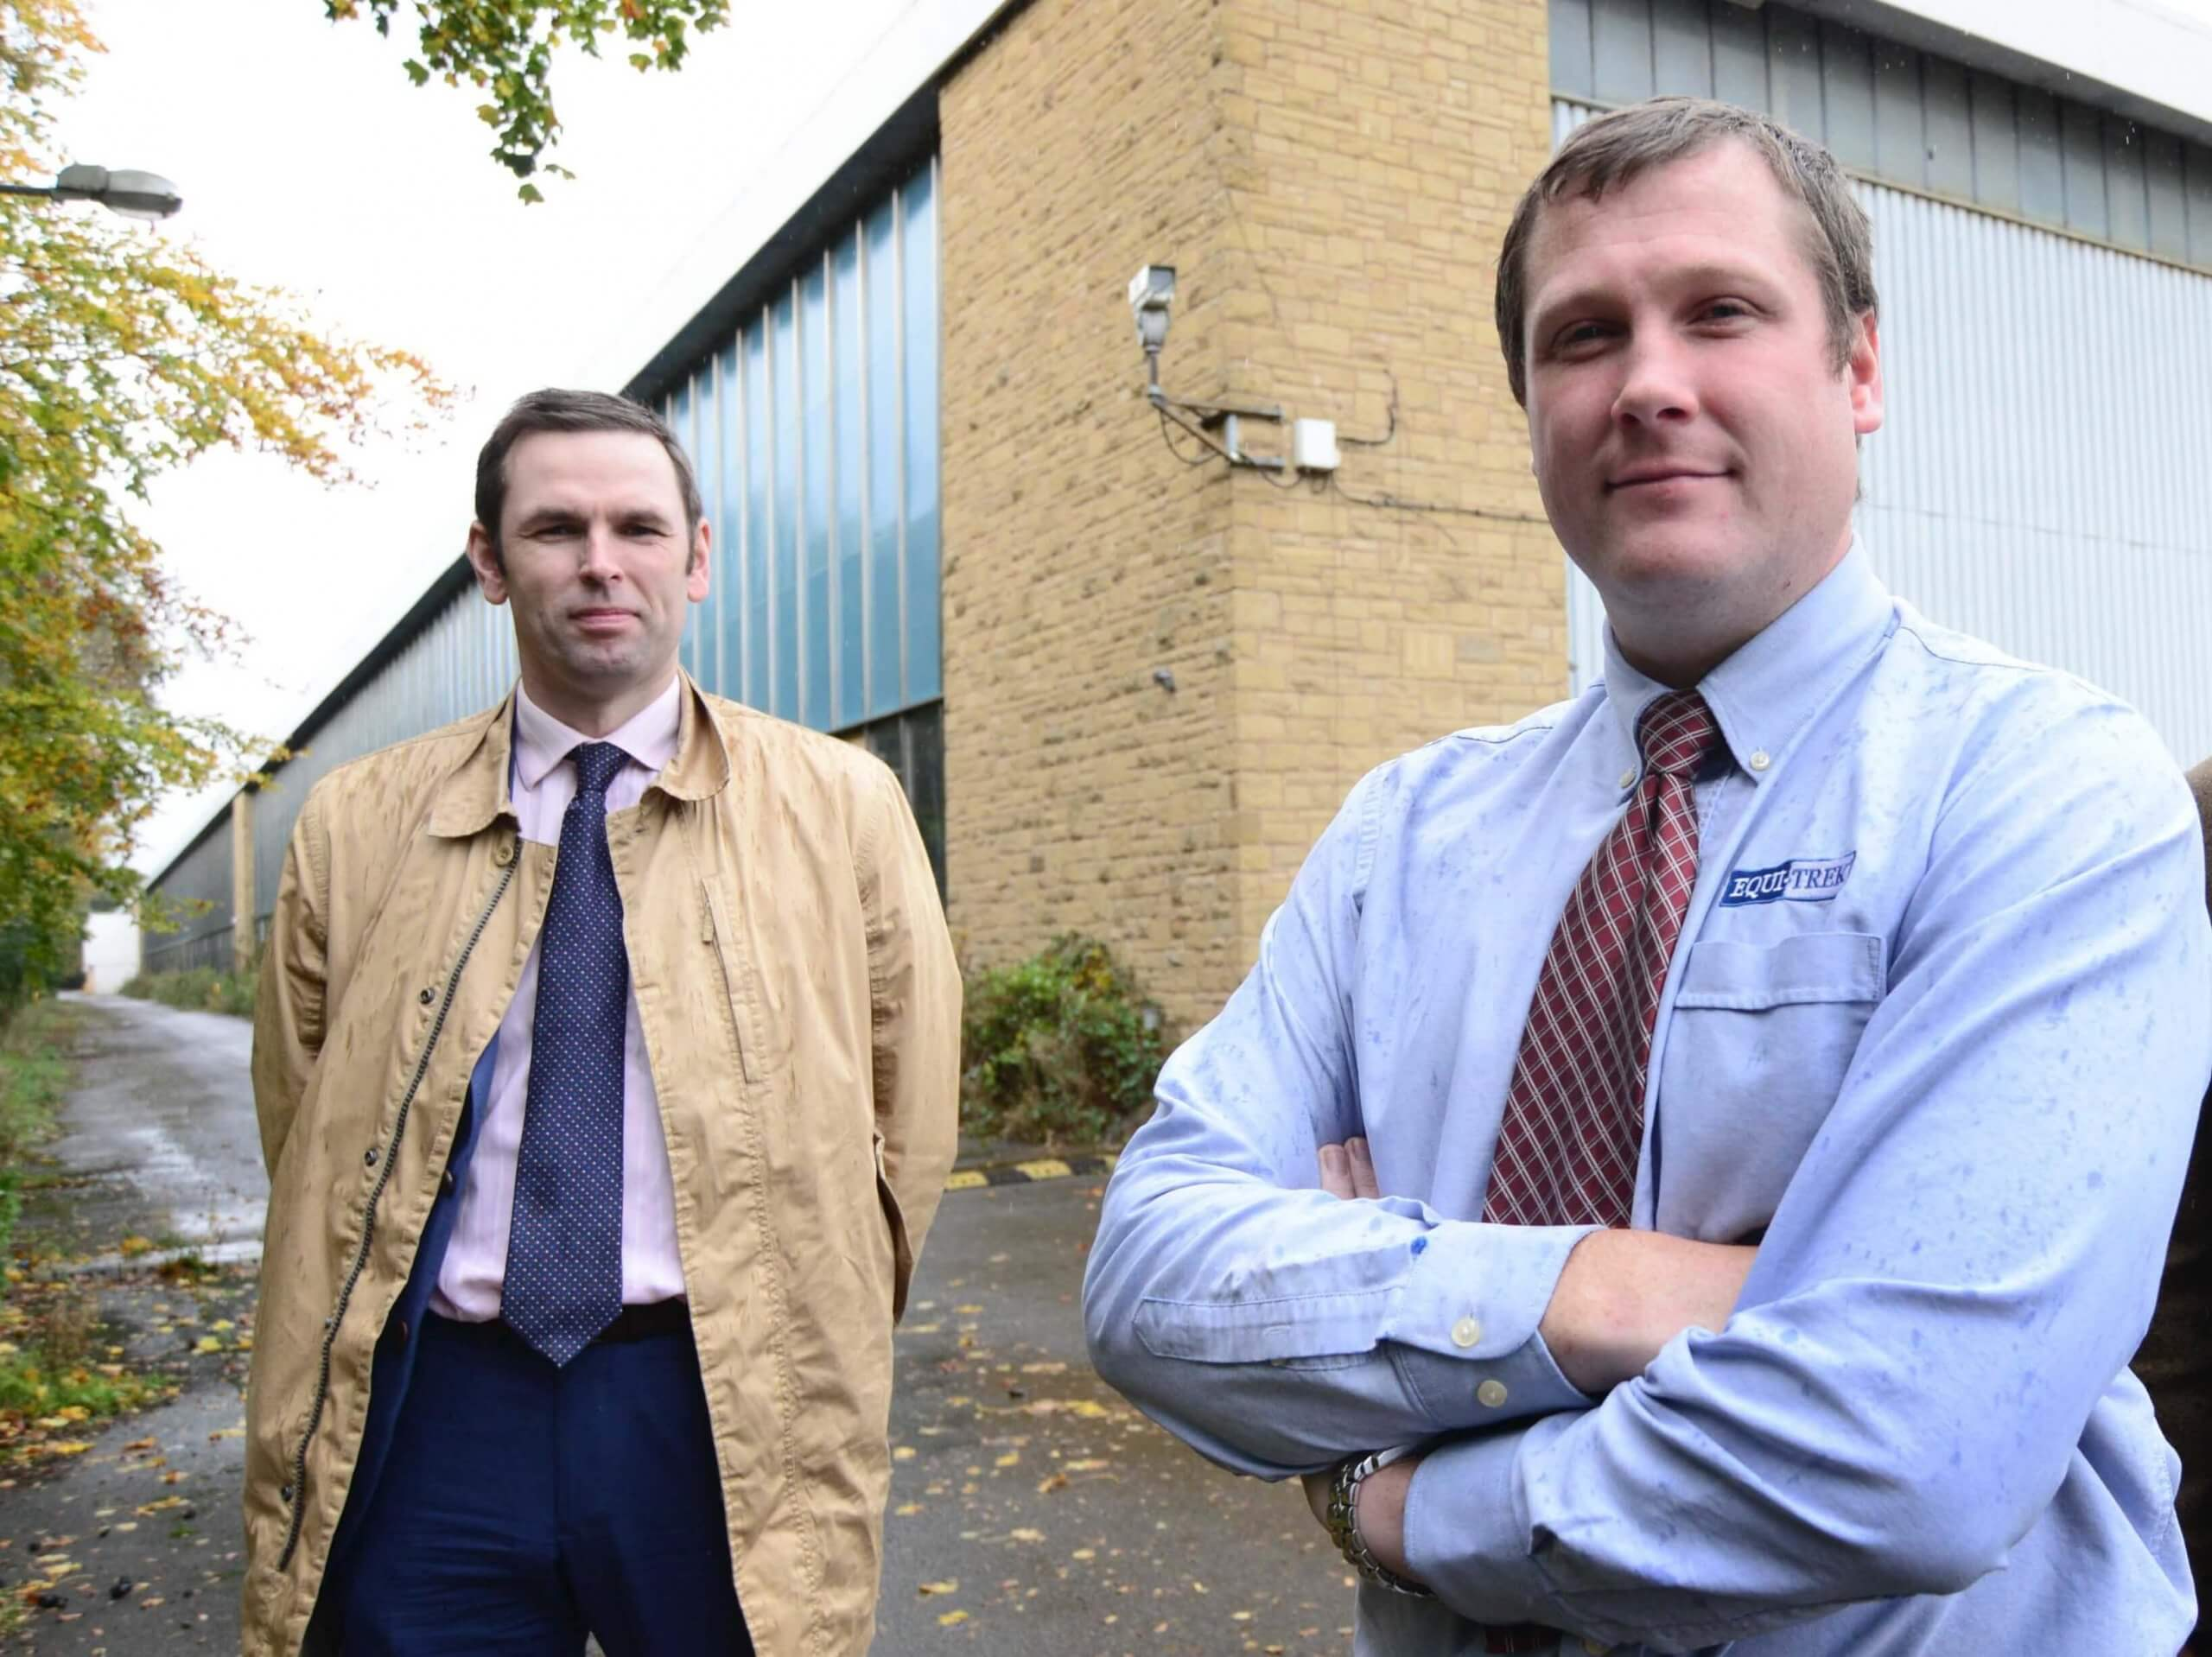 Hundreds of jobs created in Barnsley by business support programme